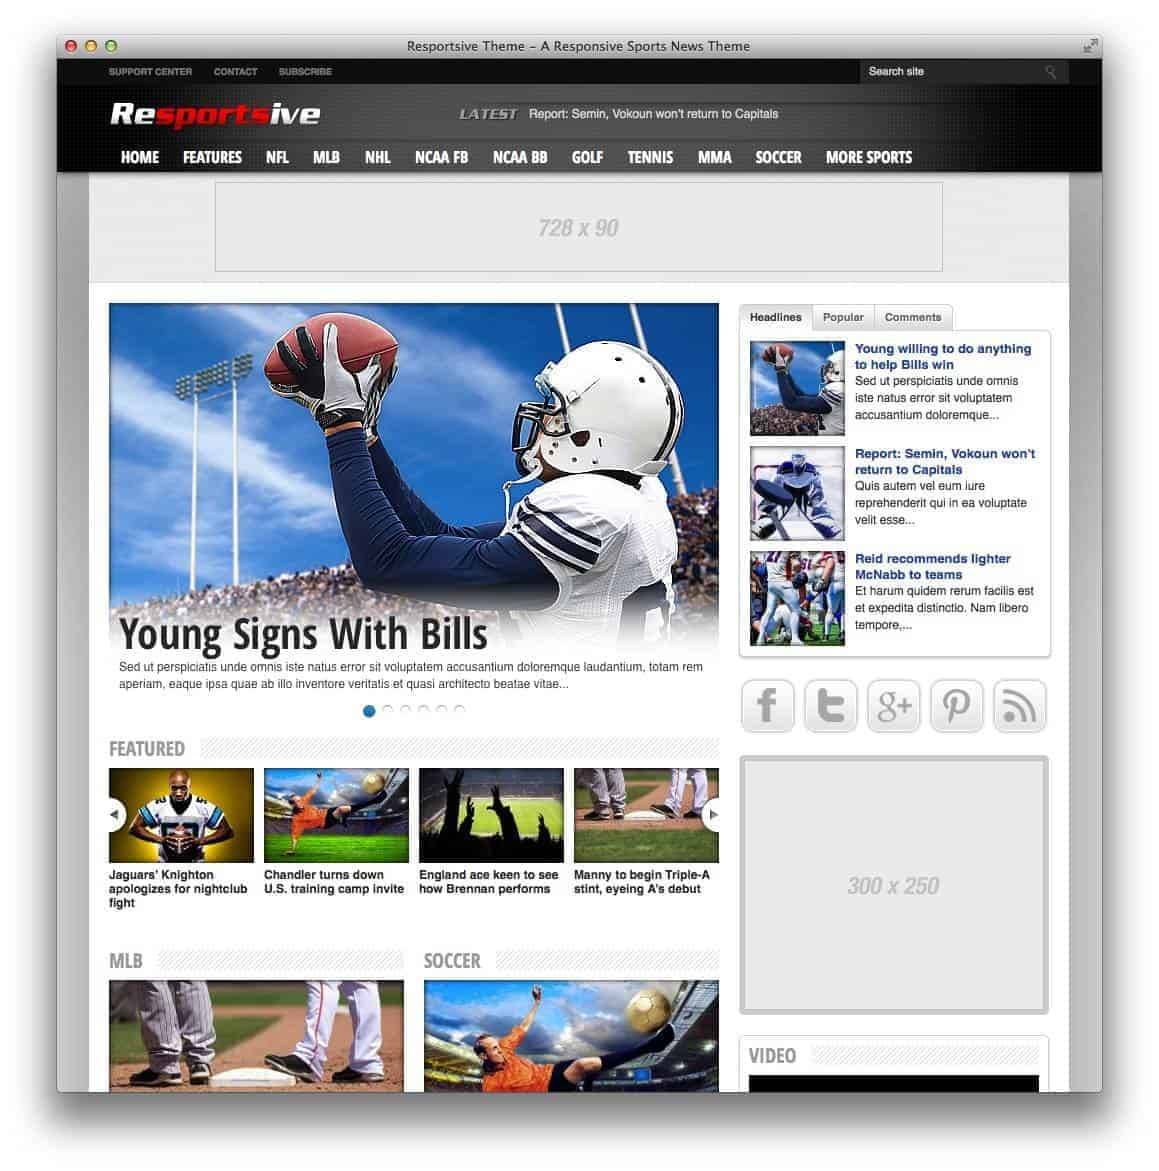 resportsive-responsive-sports-news-theme